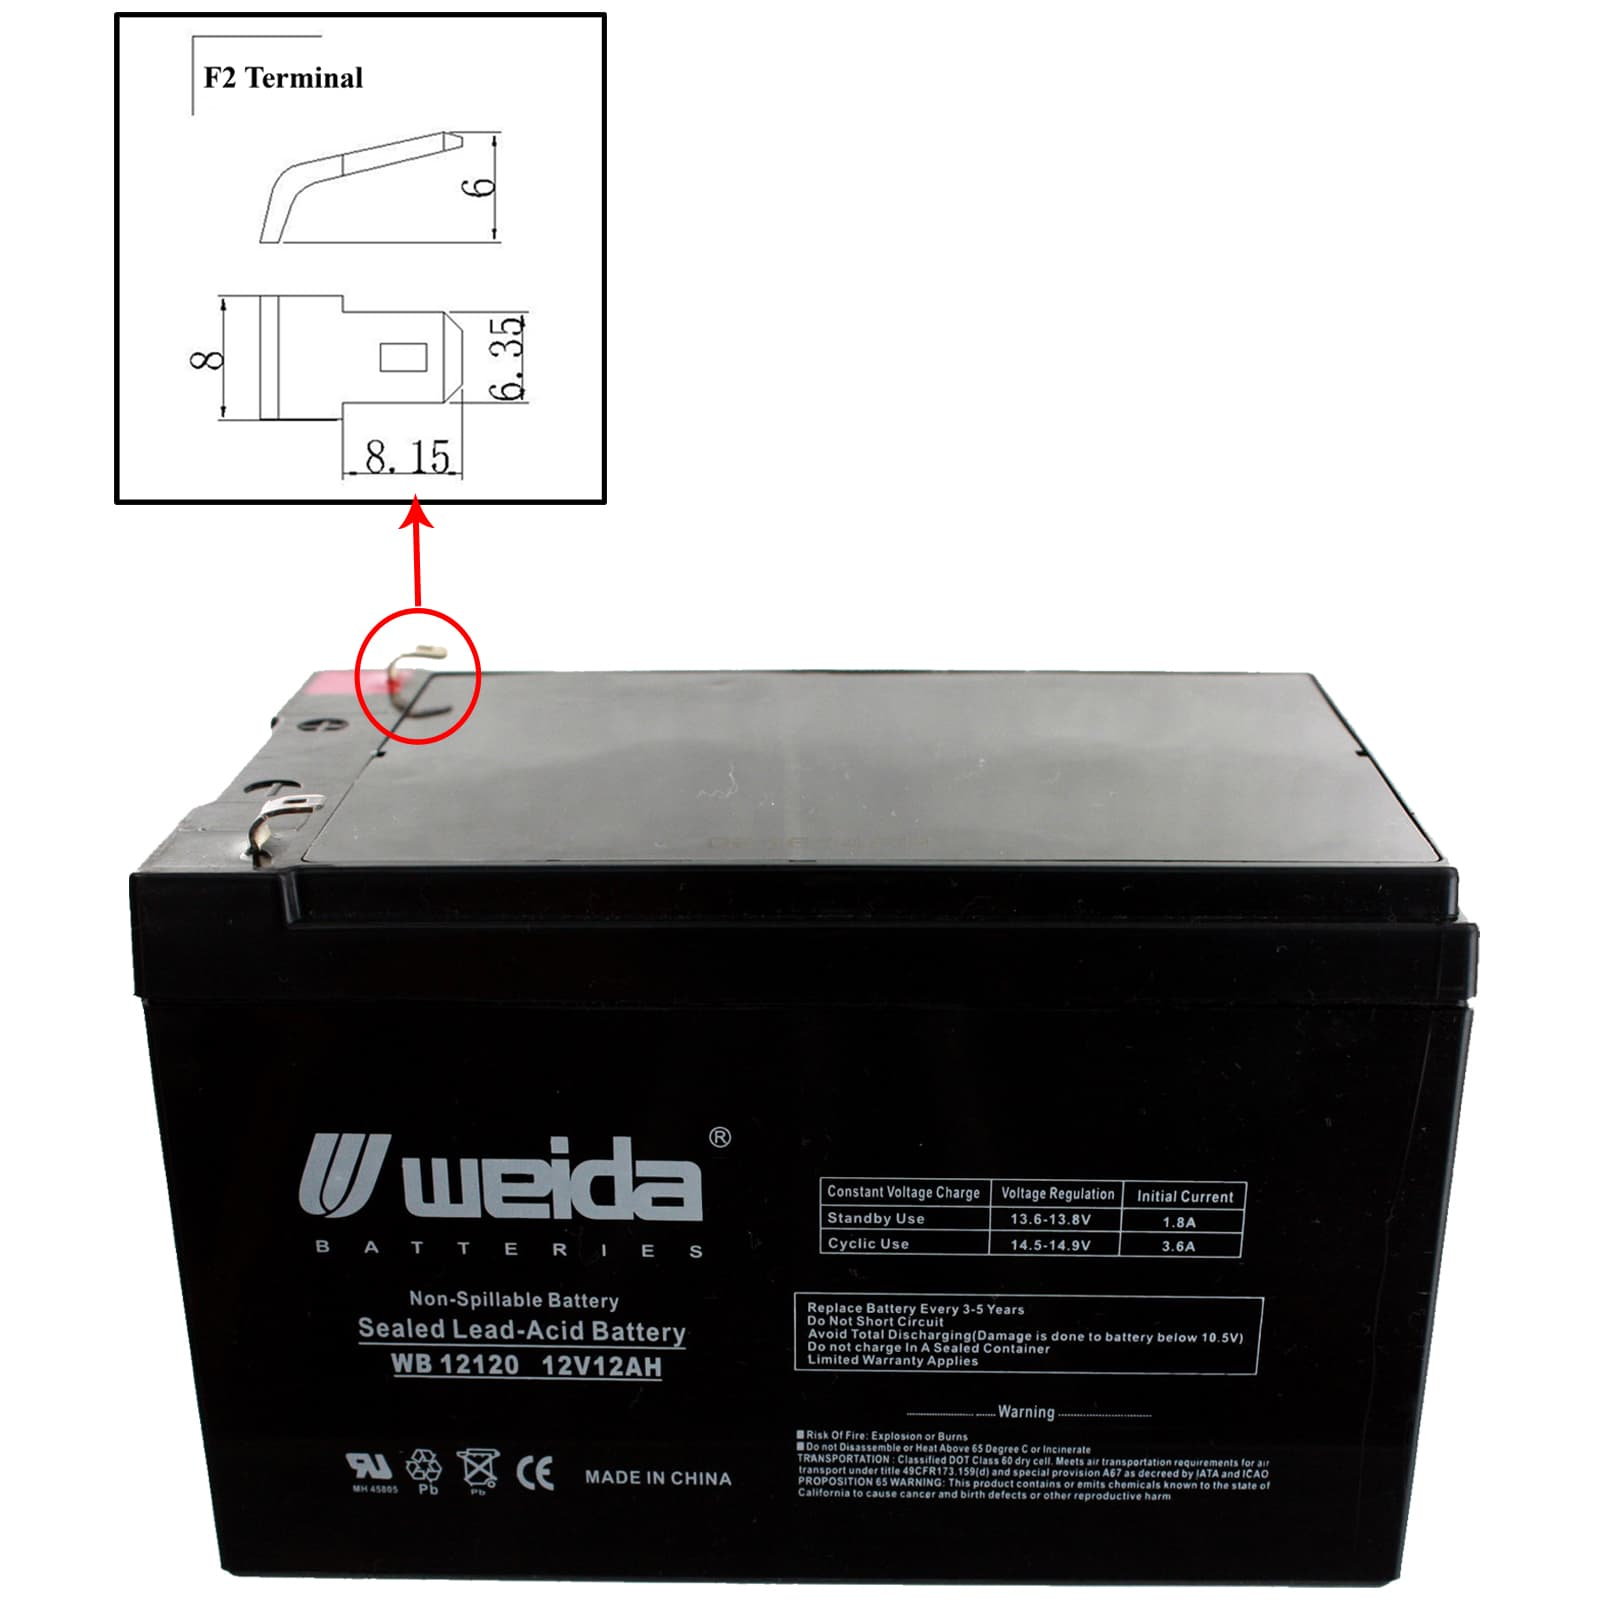 4 Pack Brand Product Mighty Max Battery Data Shield AT5000 12V 12Ah F2 Lead Acid Battery